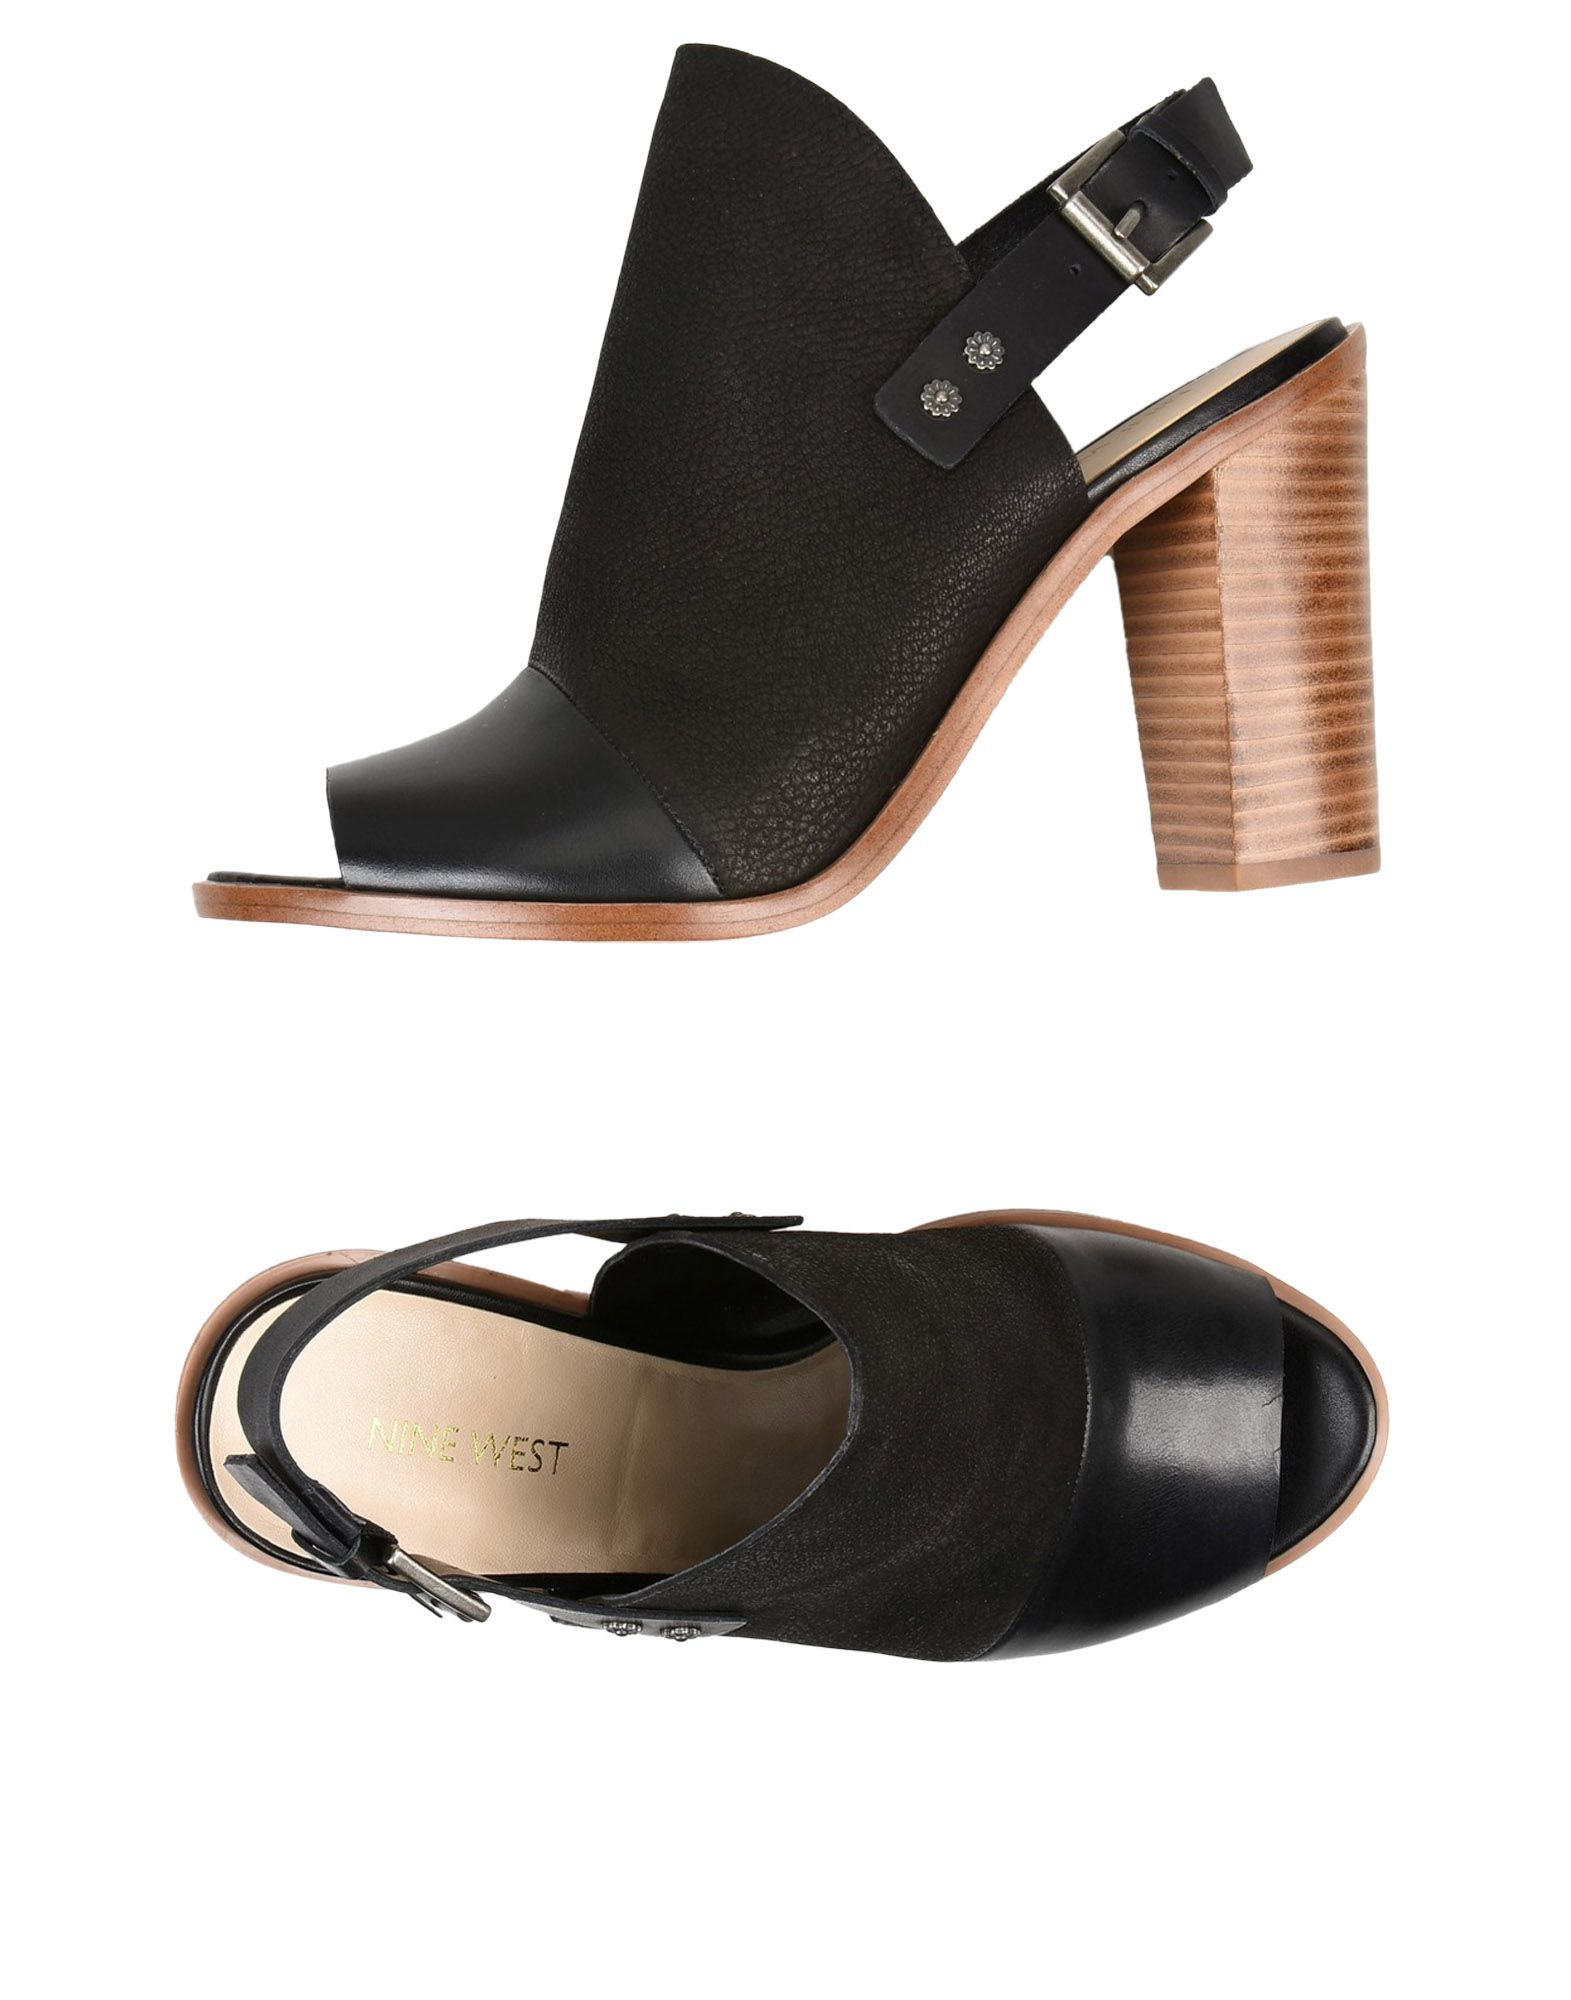 Nine West Sandals - Women Women - Nine West Sandals online on  Canada - 11236657TH 5ea6ad